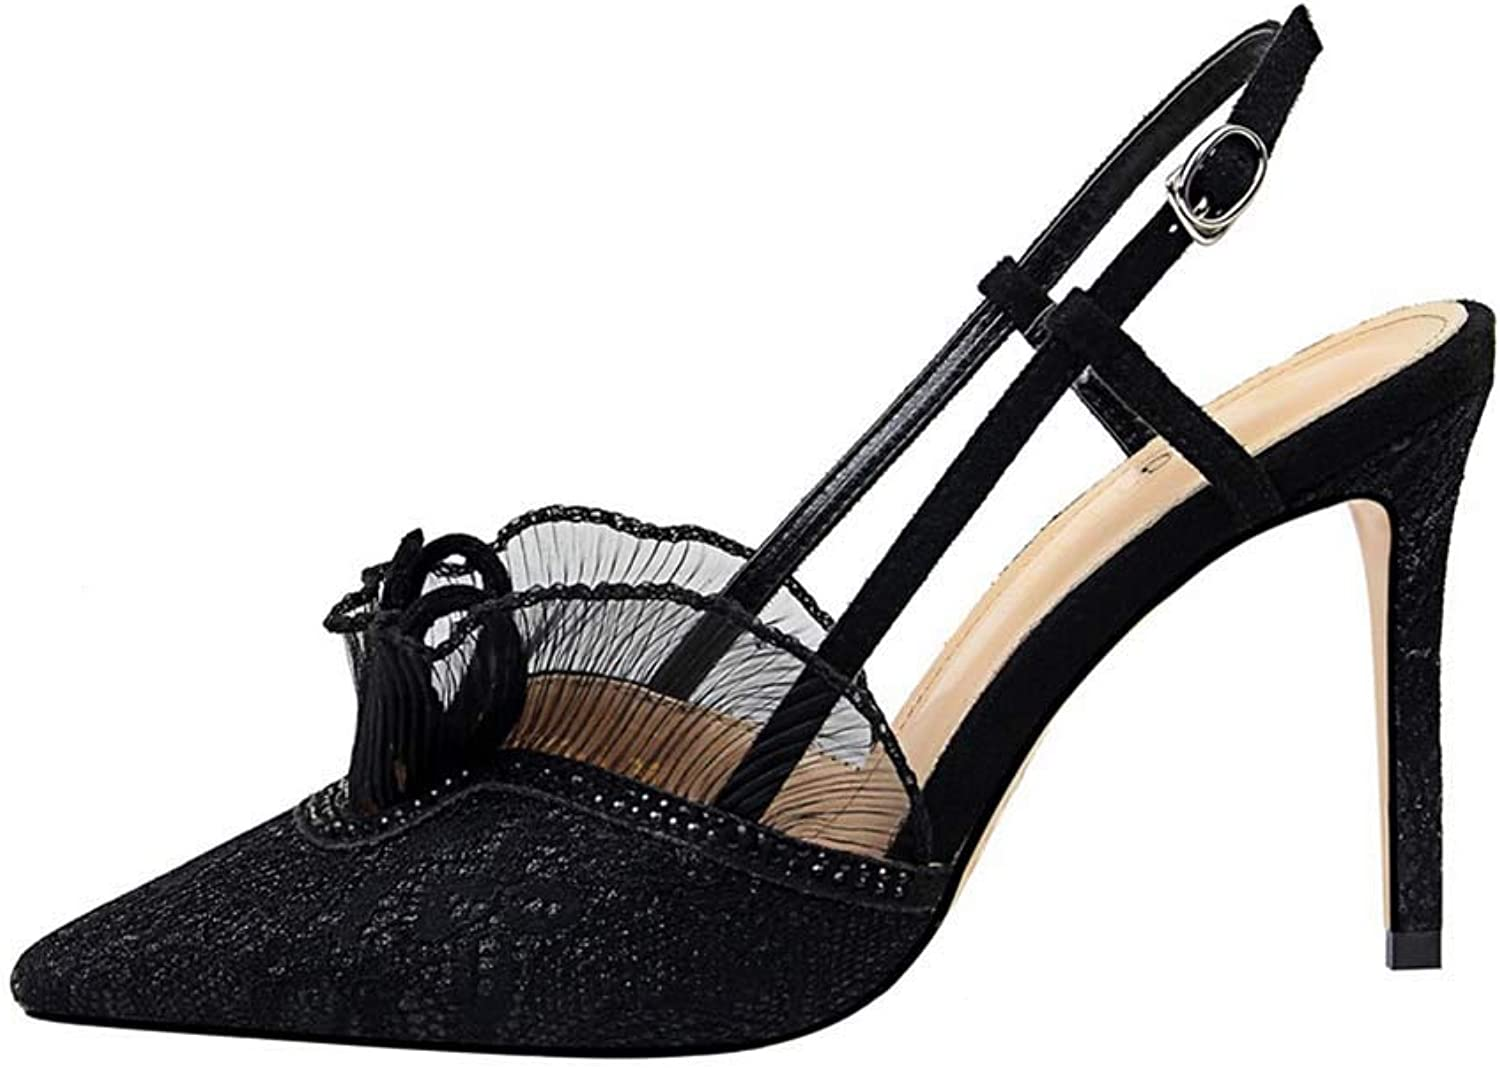 Women's Classic Breathable Jacquard Sandals, Pointed Toe Stiletto Party Evening High Heel Dress Sandals Pumps